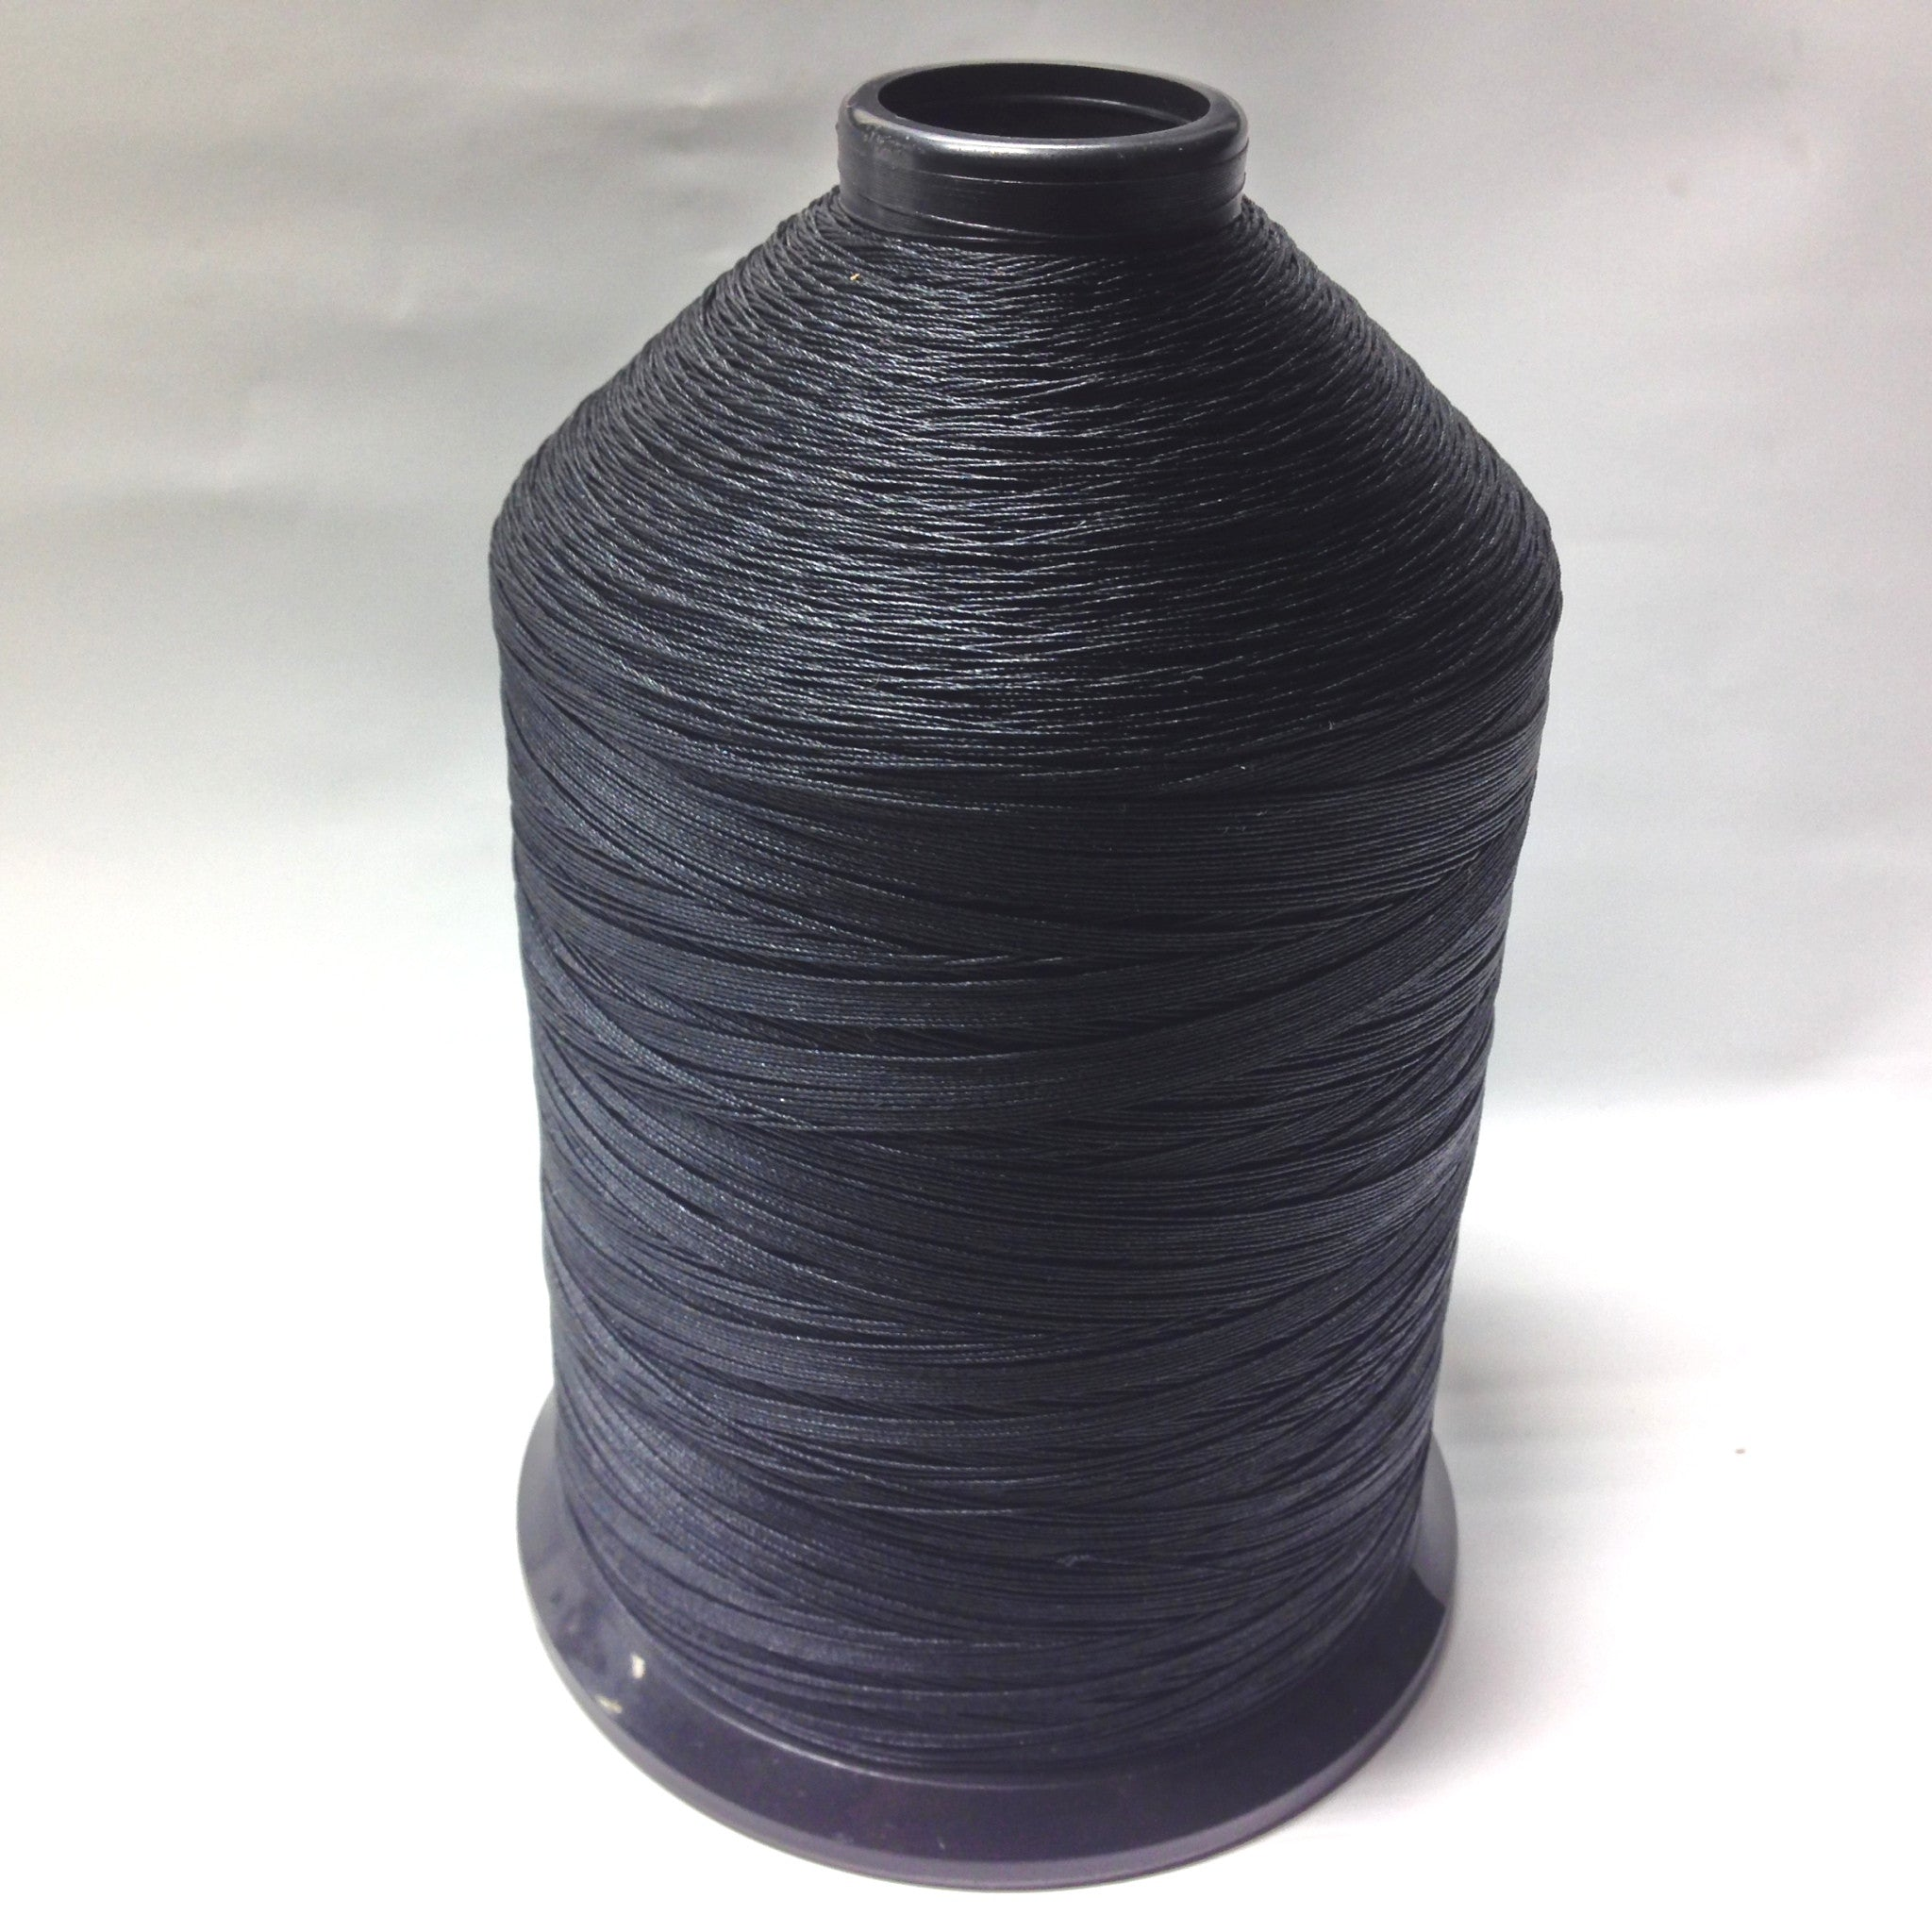 #138 Black Bonded Nylon Thread 1 lb.